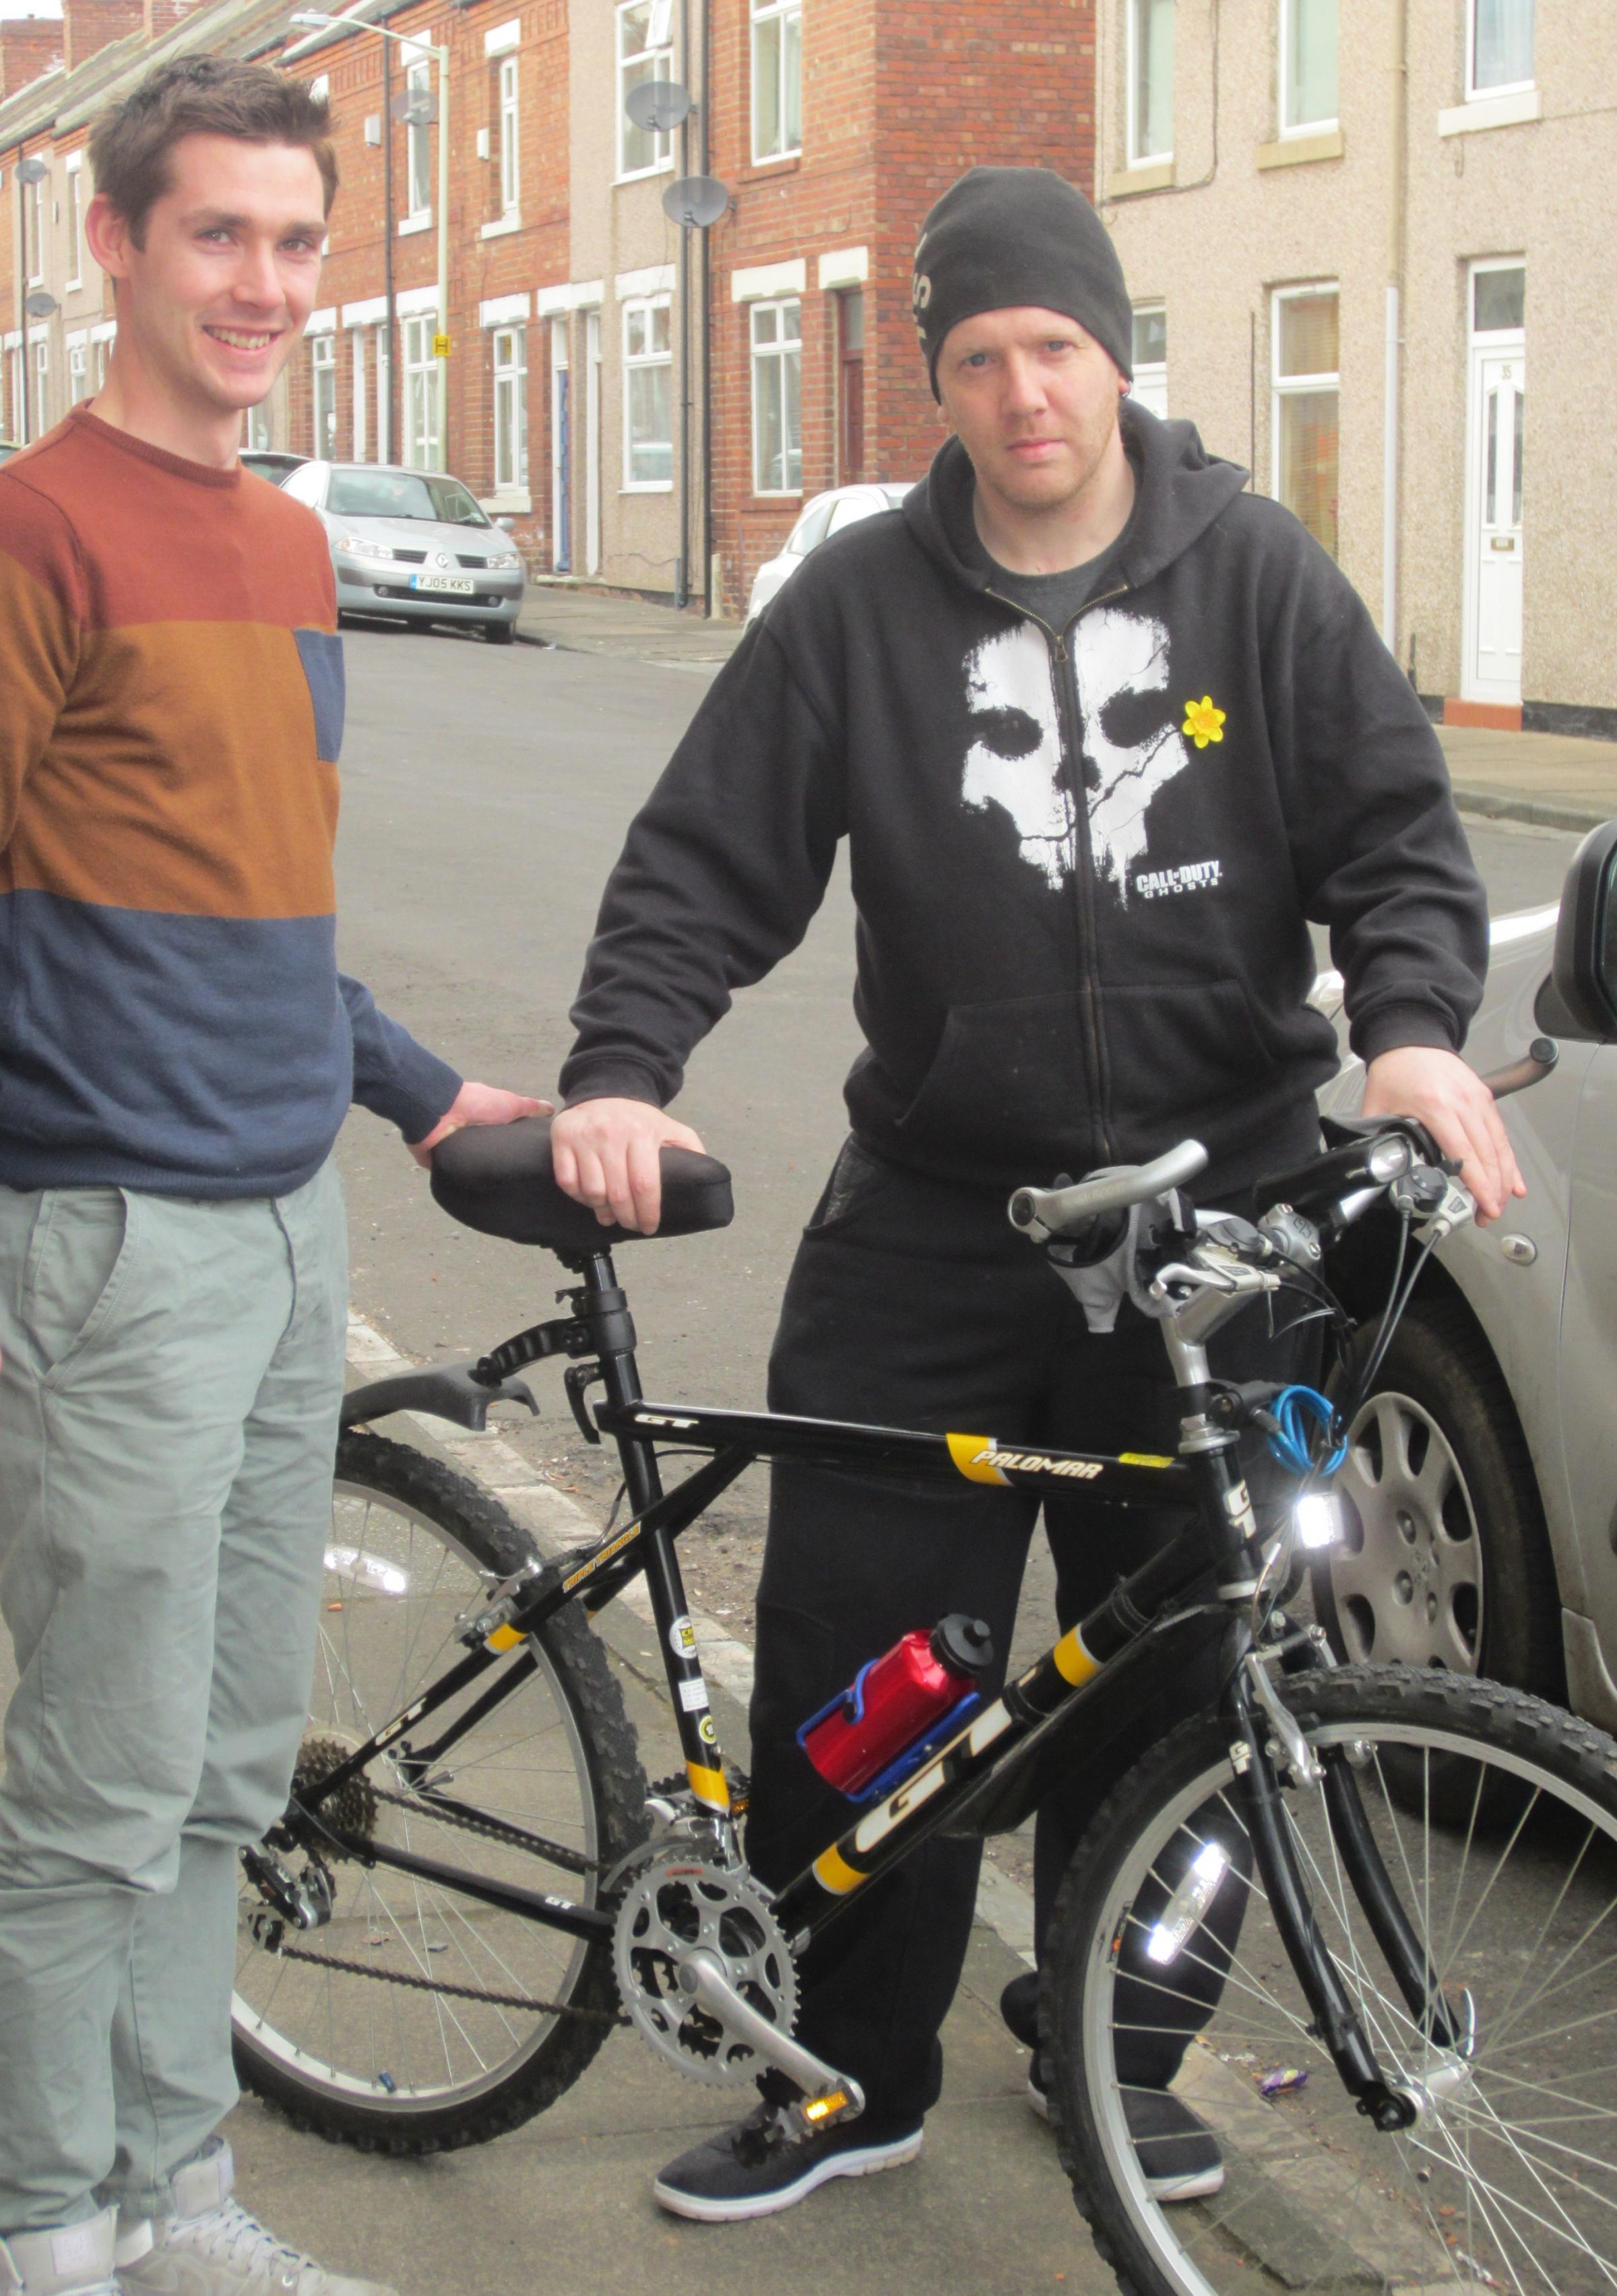 BACK HOME: PCSO Mark Rodgers and bike owner Paul Wallis